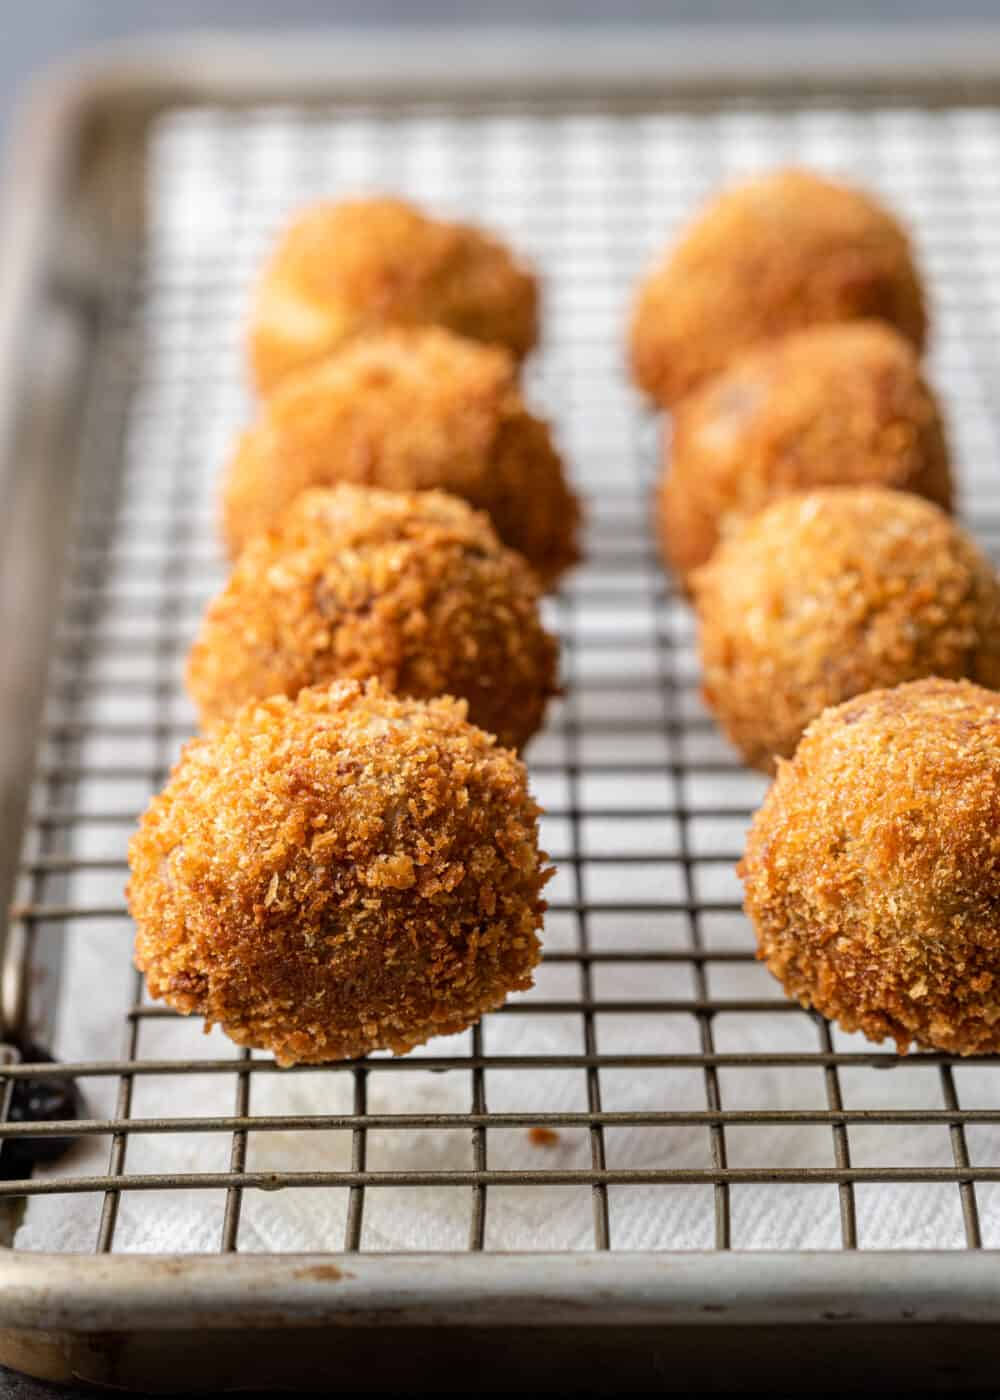 golden brown fried boudin balls on wire rack